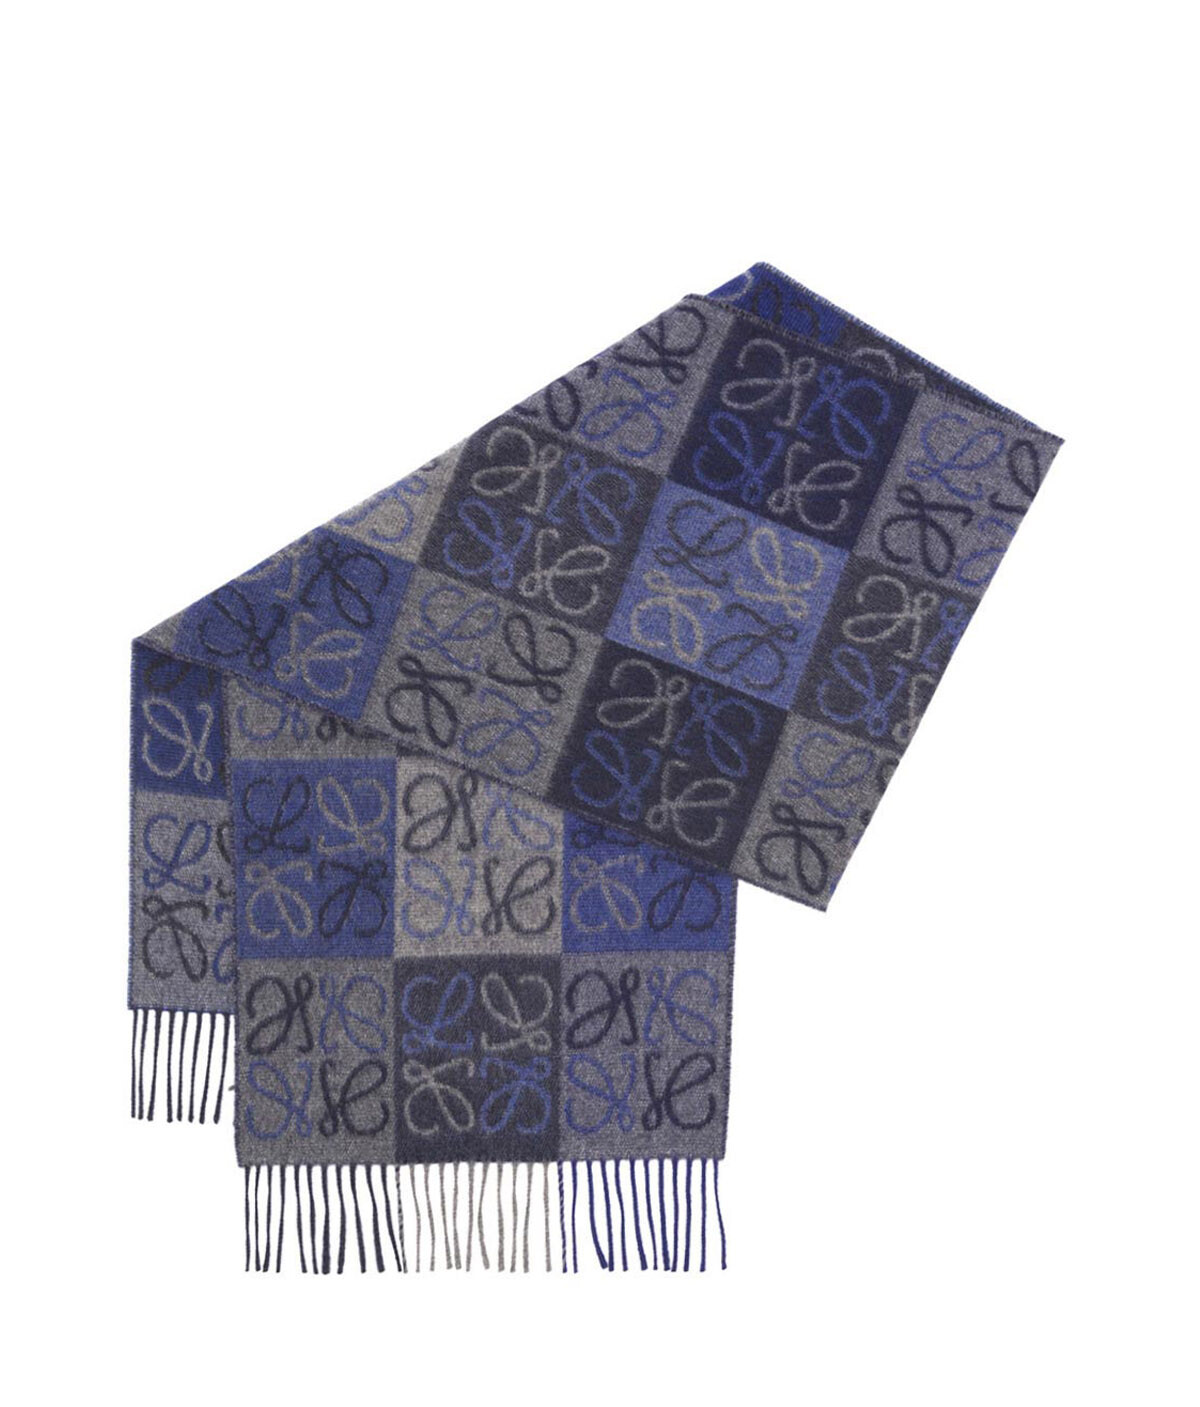 LOEWE 38X180 Scarf Anagram In Lines 蓝色 front